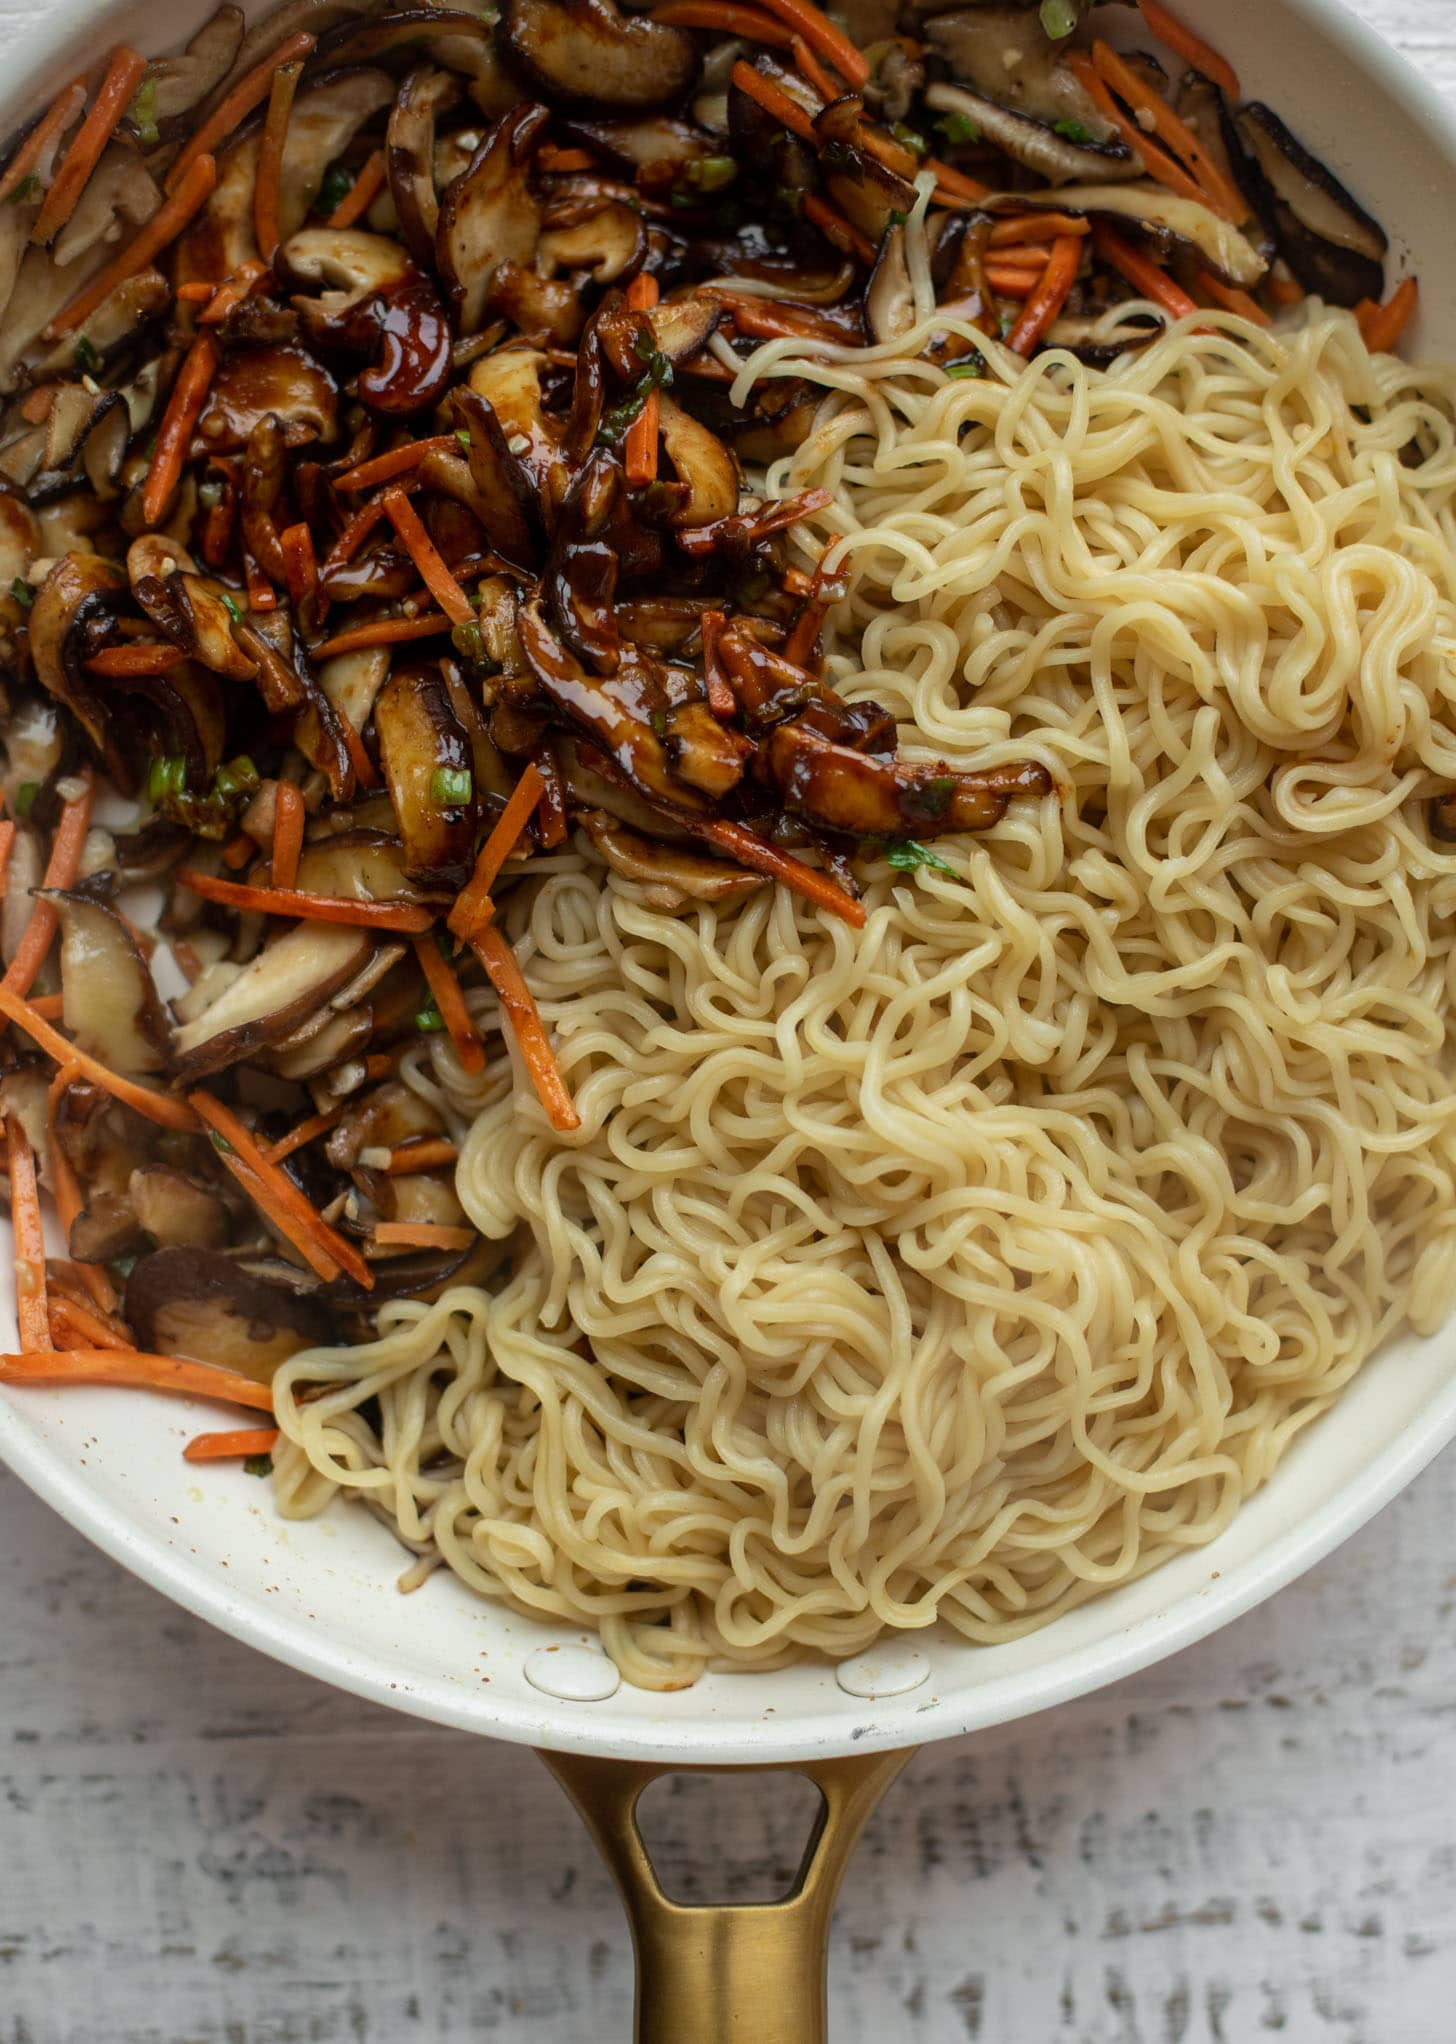 shiitake mushrooms, carrots, scallions and ramen noodles